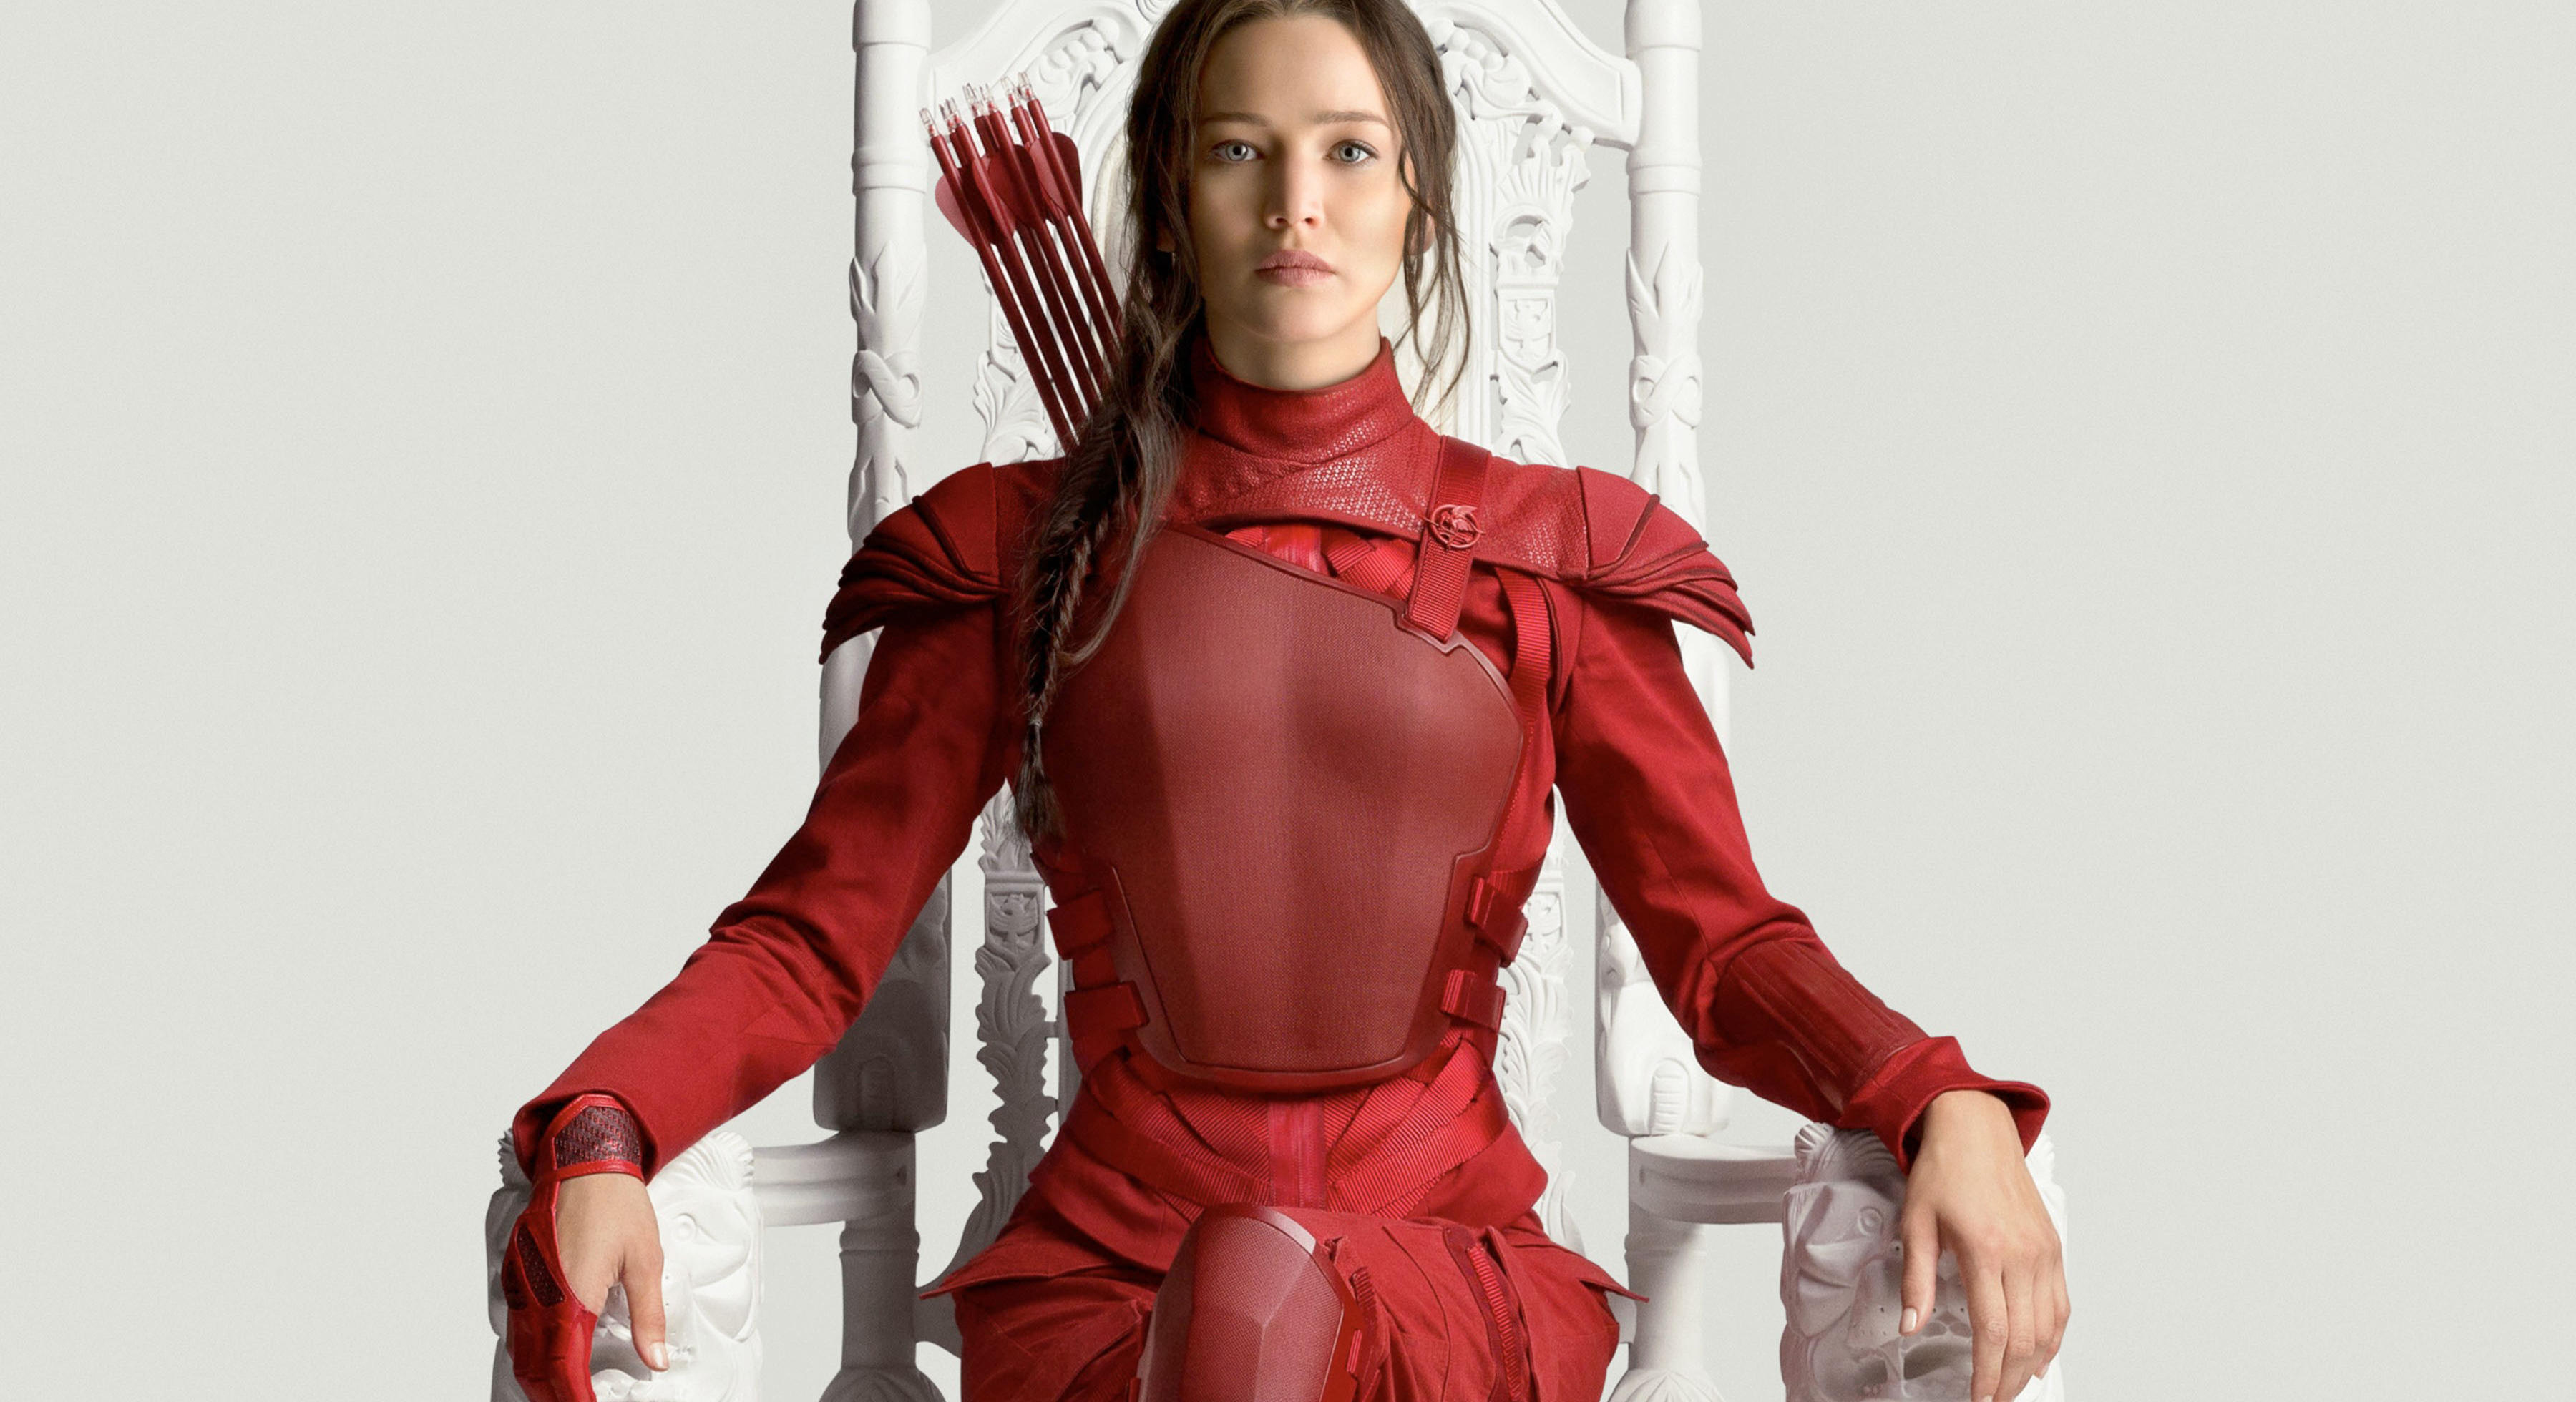 The hunger games in high style fandango the hunger games in high style solutioingenieria Gallery